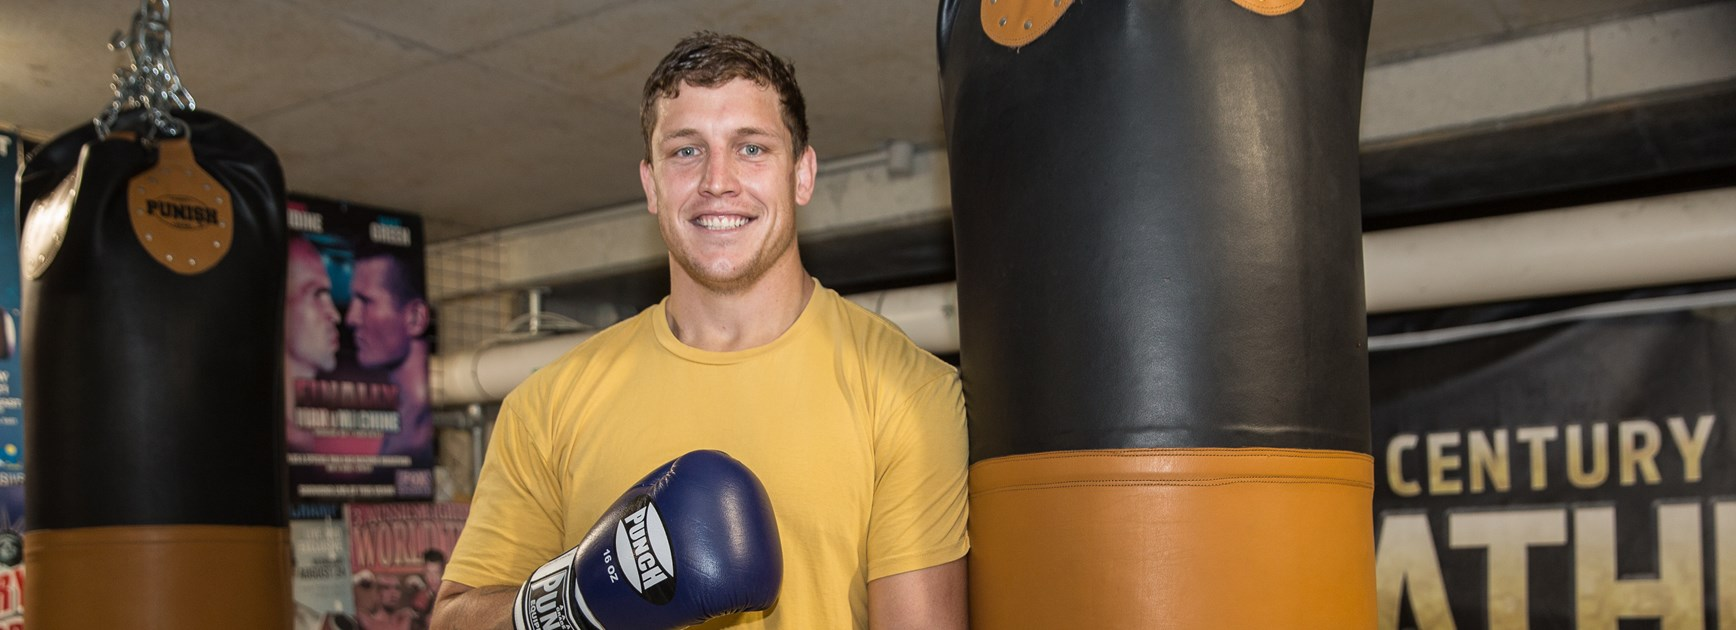 Training for boxing debut has Wallace primed for 2020 campaign